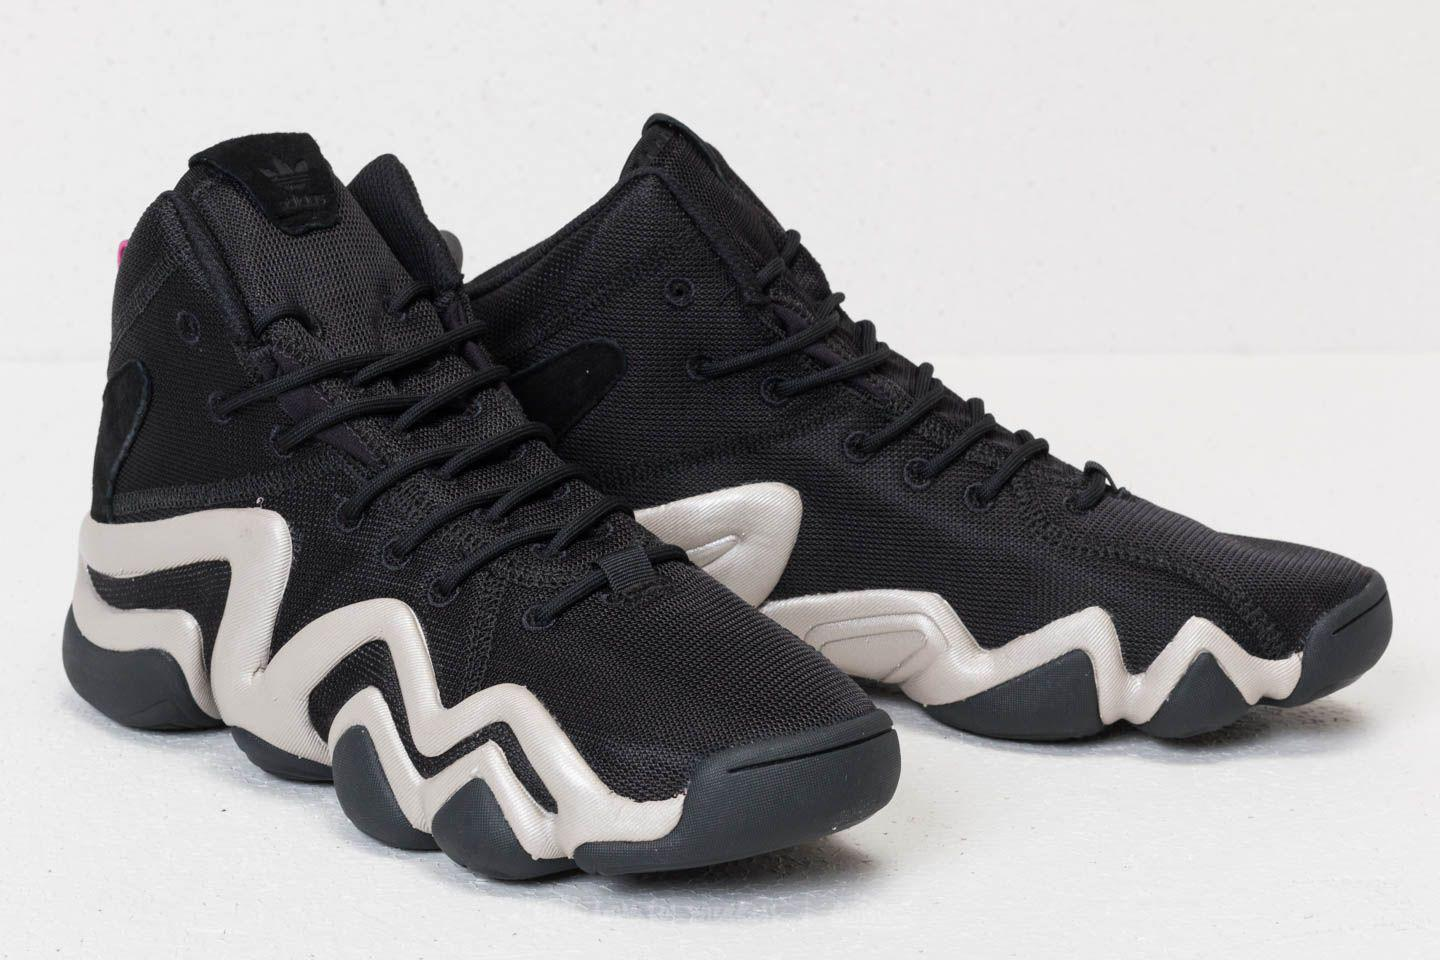 finest selection 17298 44095 Lyst - adidas Originals Adidas Crazy 8 Adv W Core Black Core